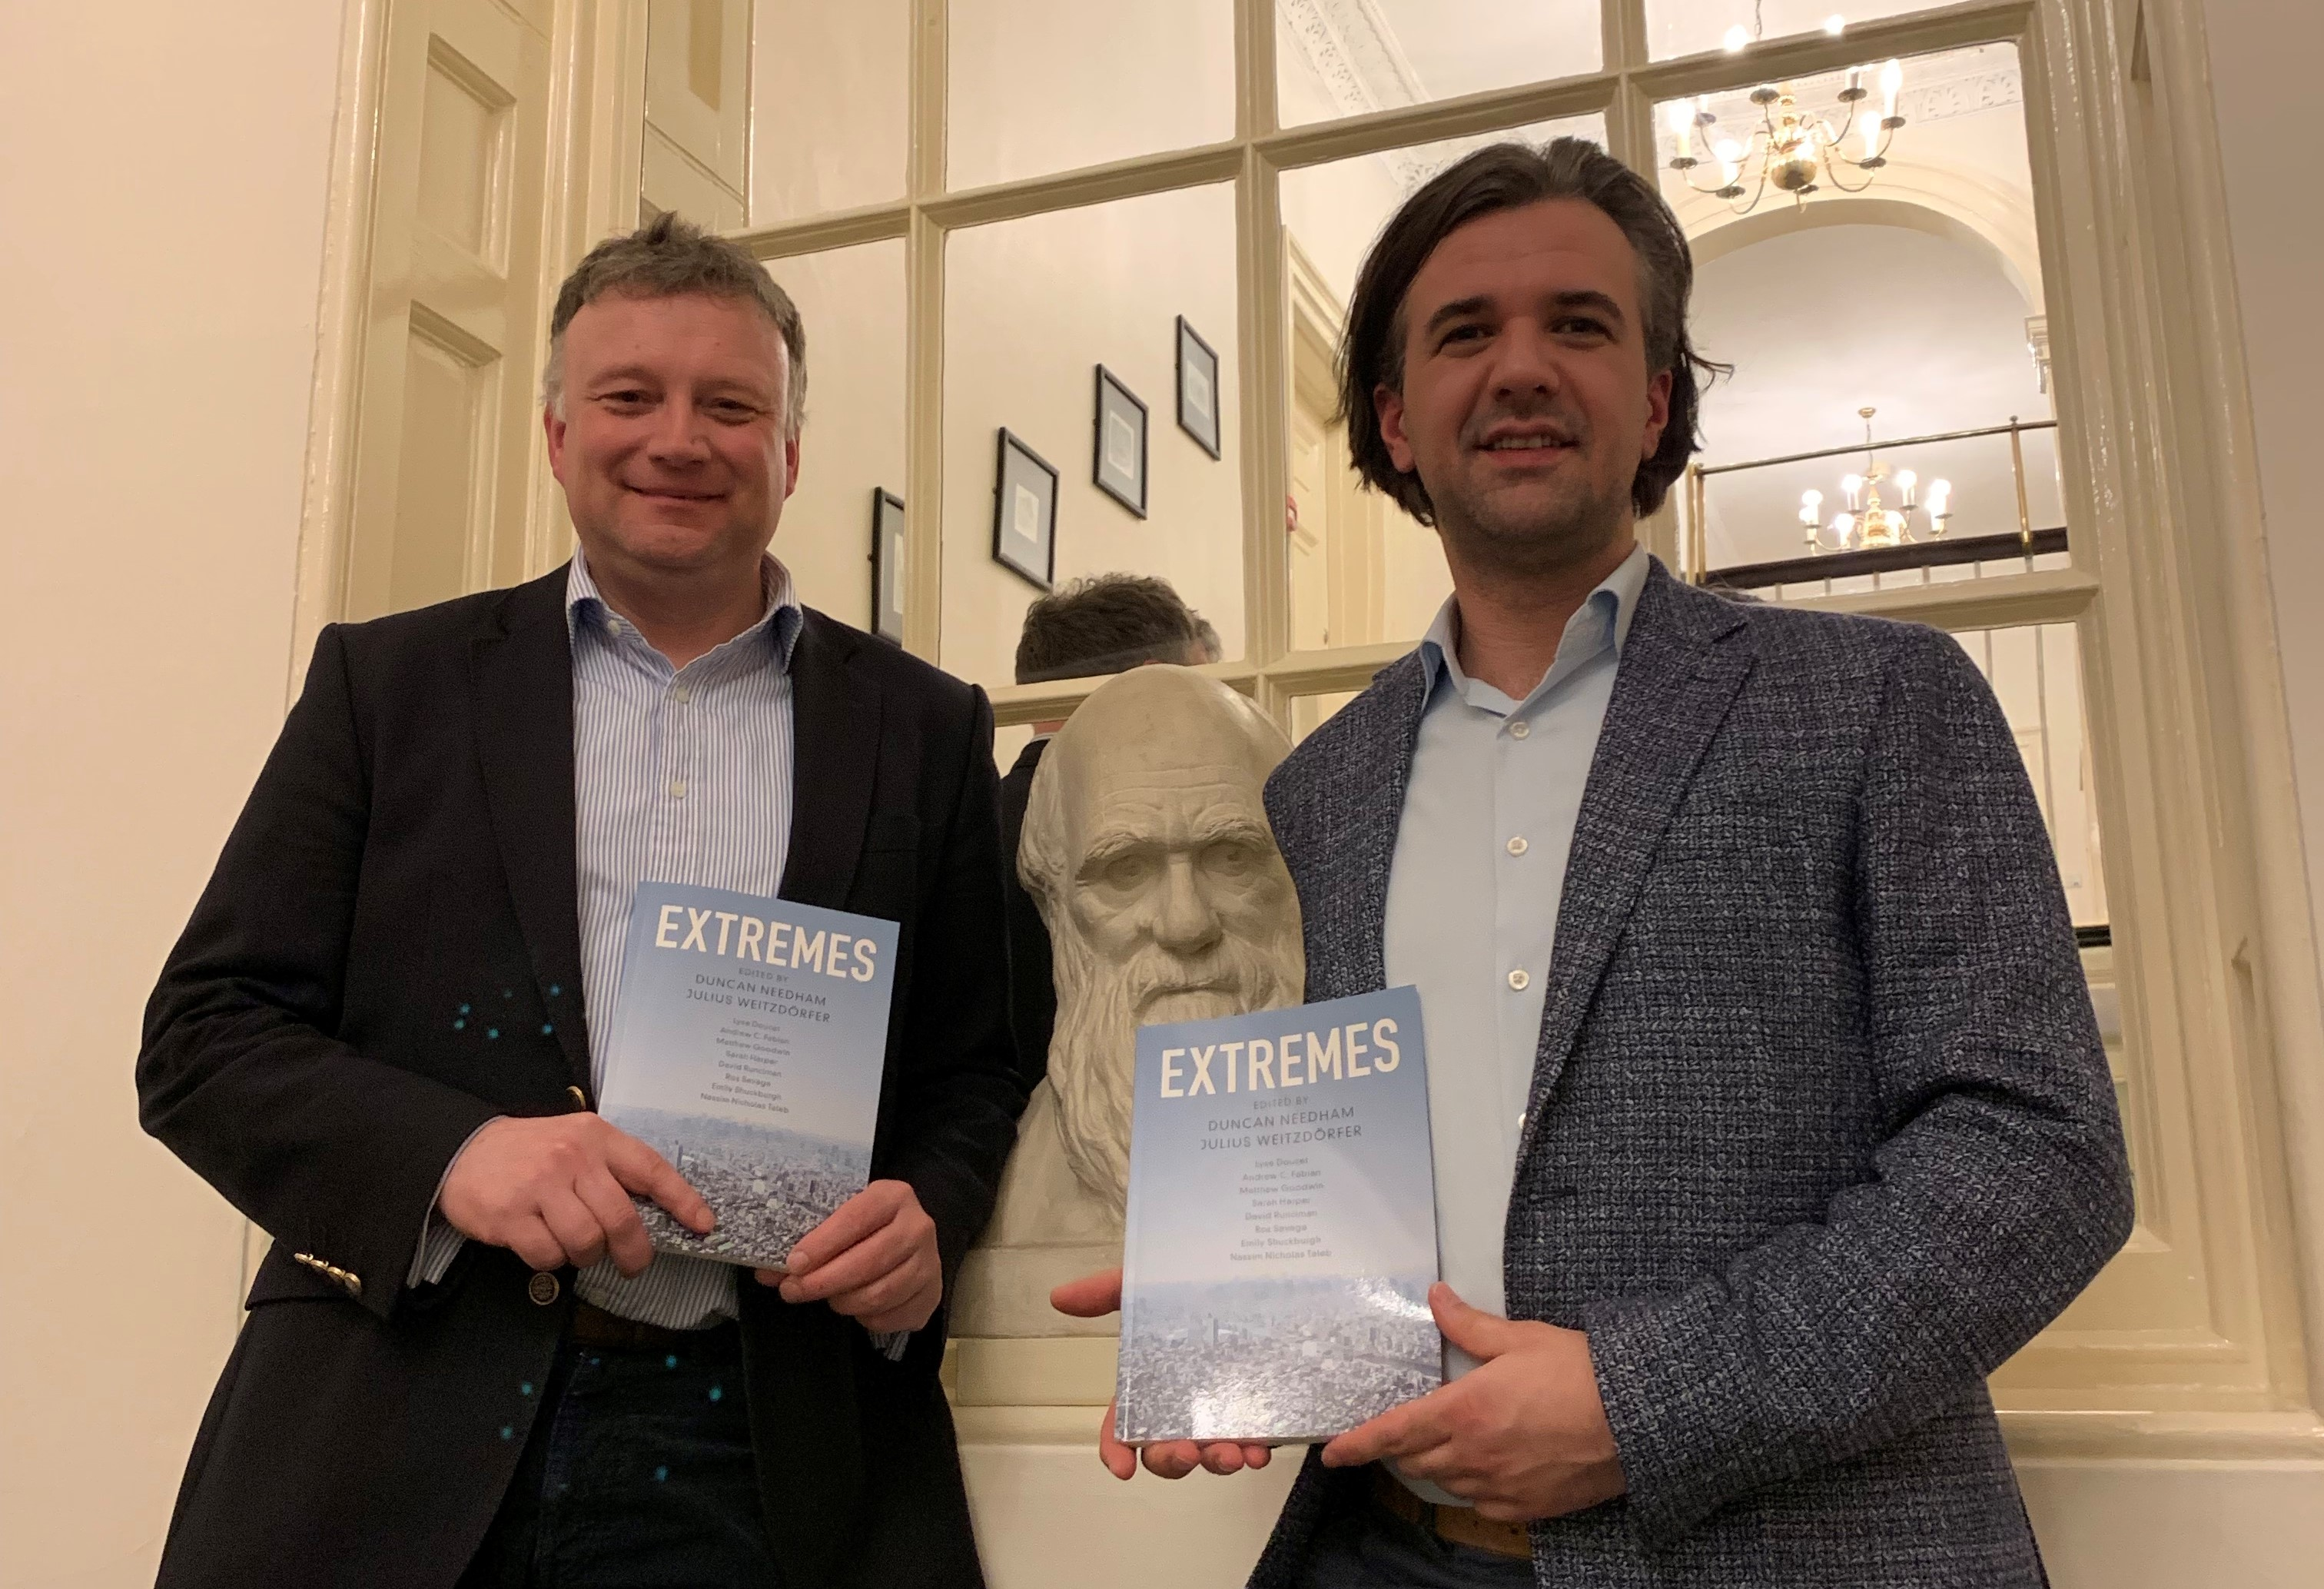 Extremes book launch